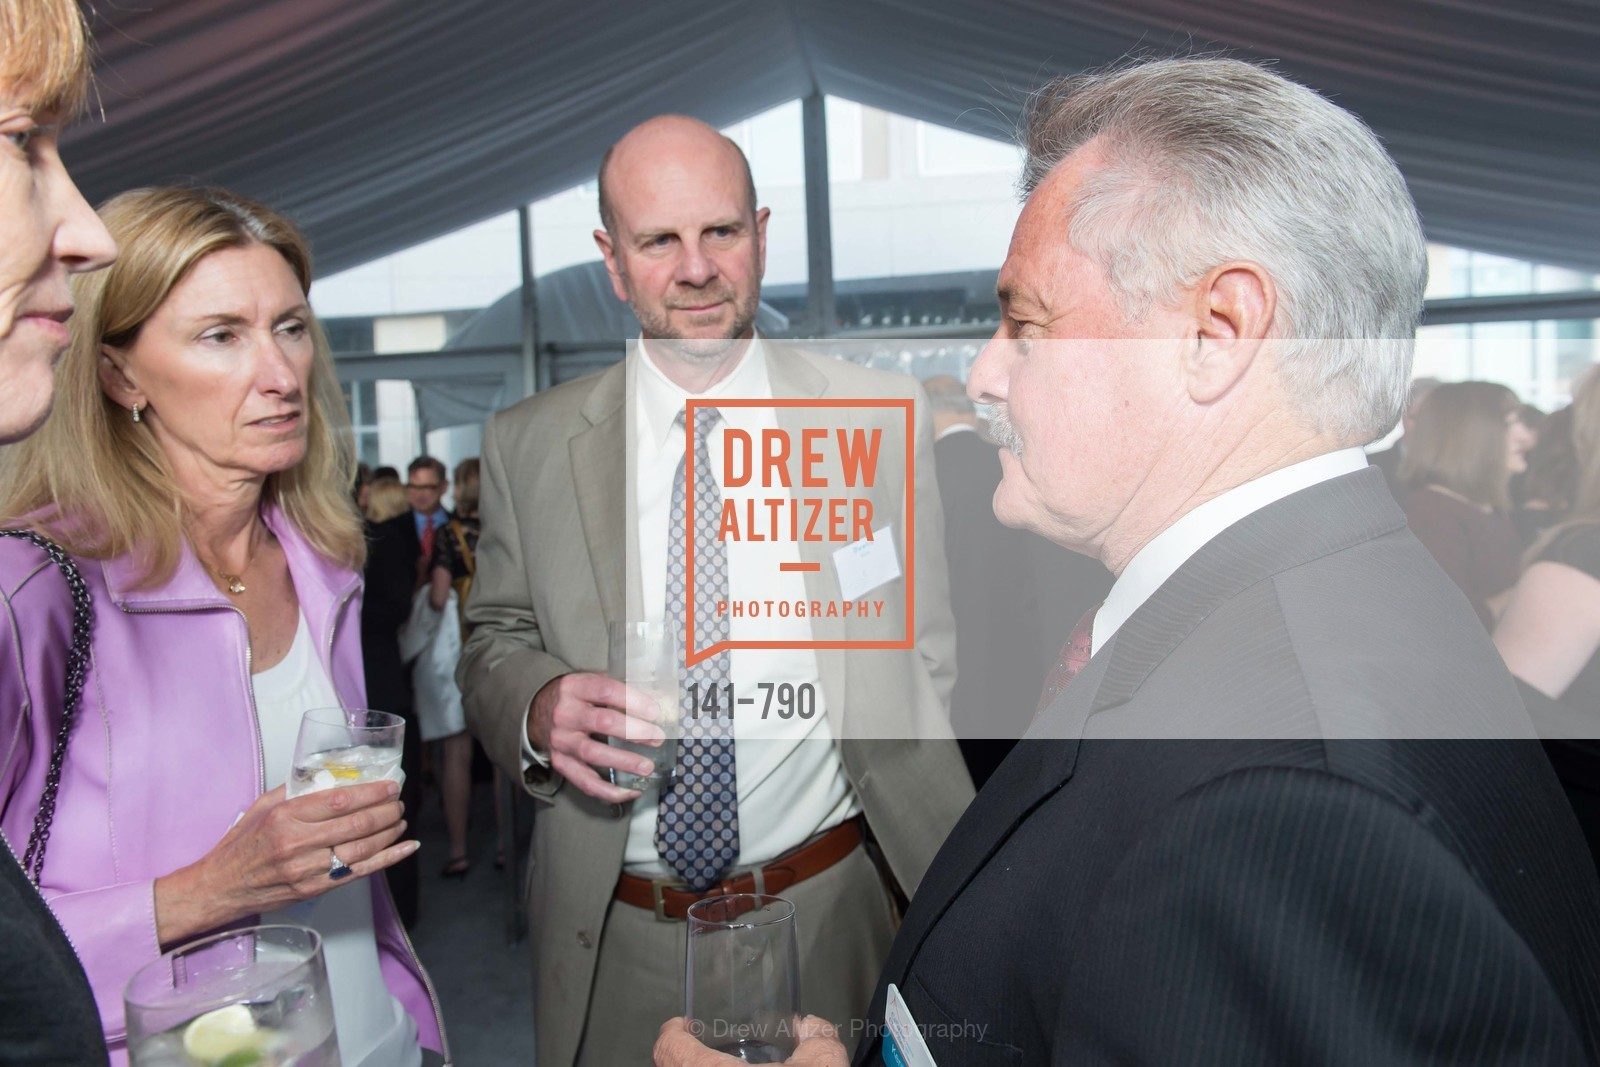 Extras, Post War and Contemporary Preview at HEDGE GALLERY, April 16th, 2015, Photo,Drew Altizer, Drew Altizer Photography, full-service agency, private events, San Francisco photographer, photographer california